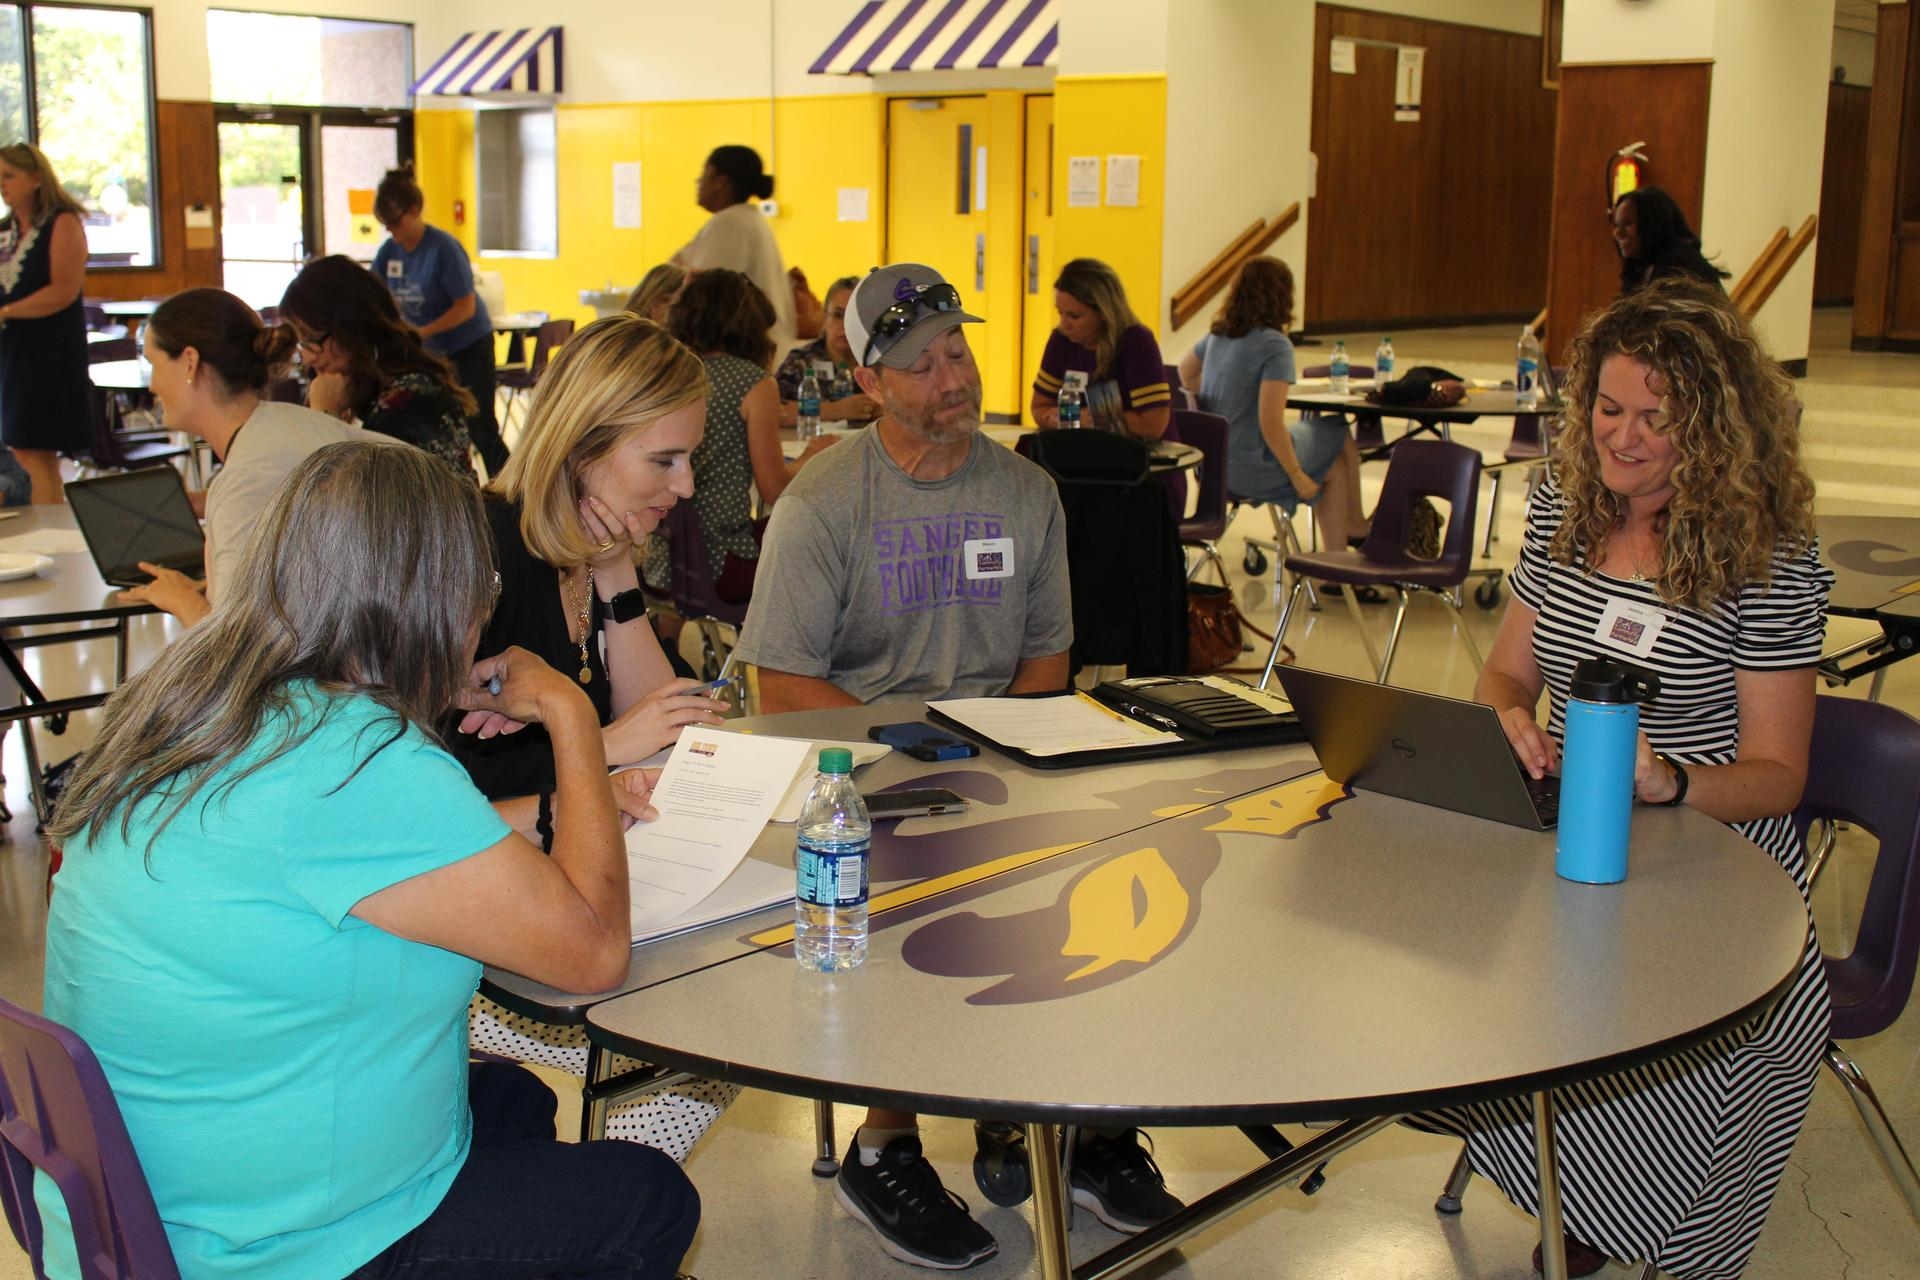 The community discusses their vision for the future of Pre K in Sanger